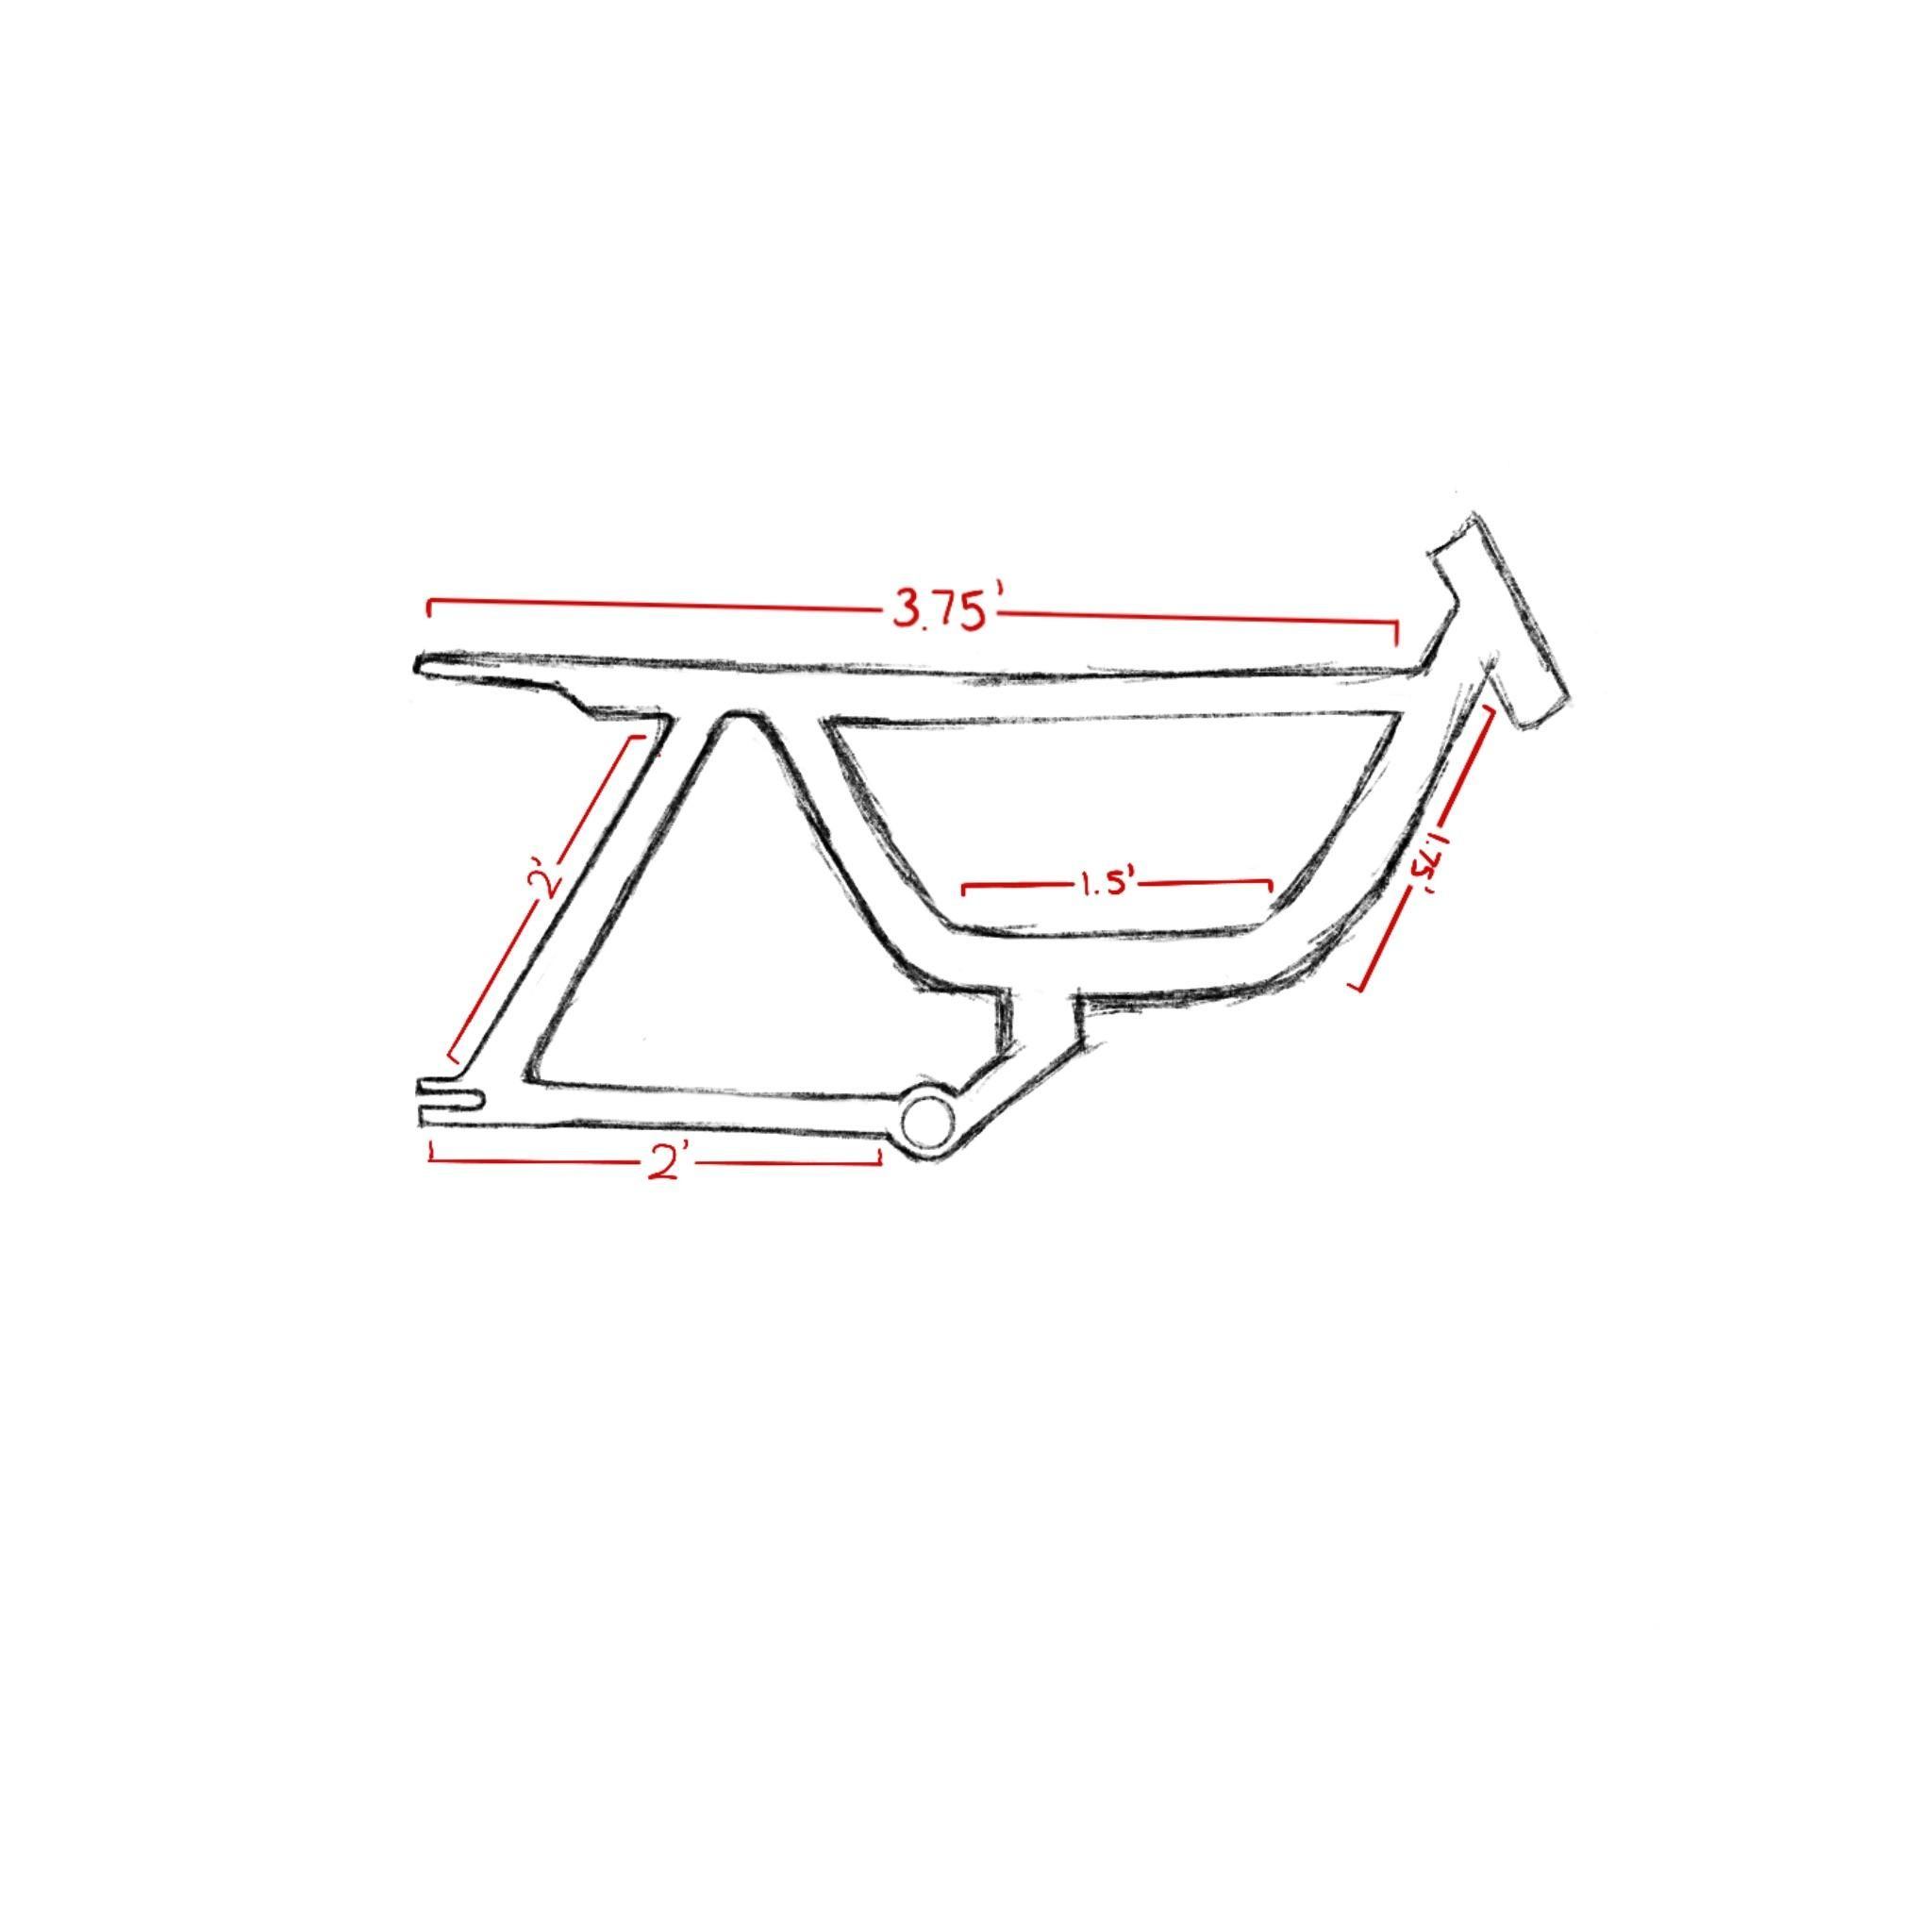 How much would a bike frame with roughly these dimensions